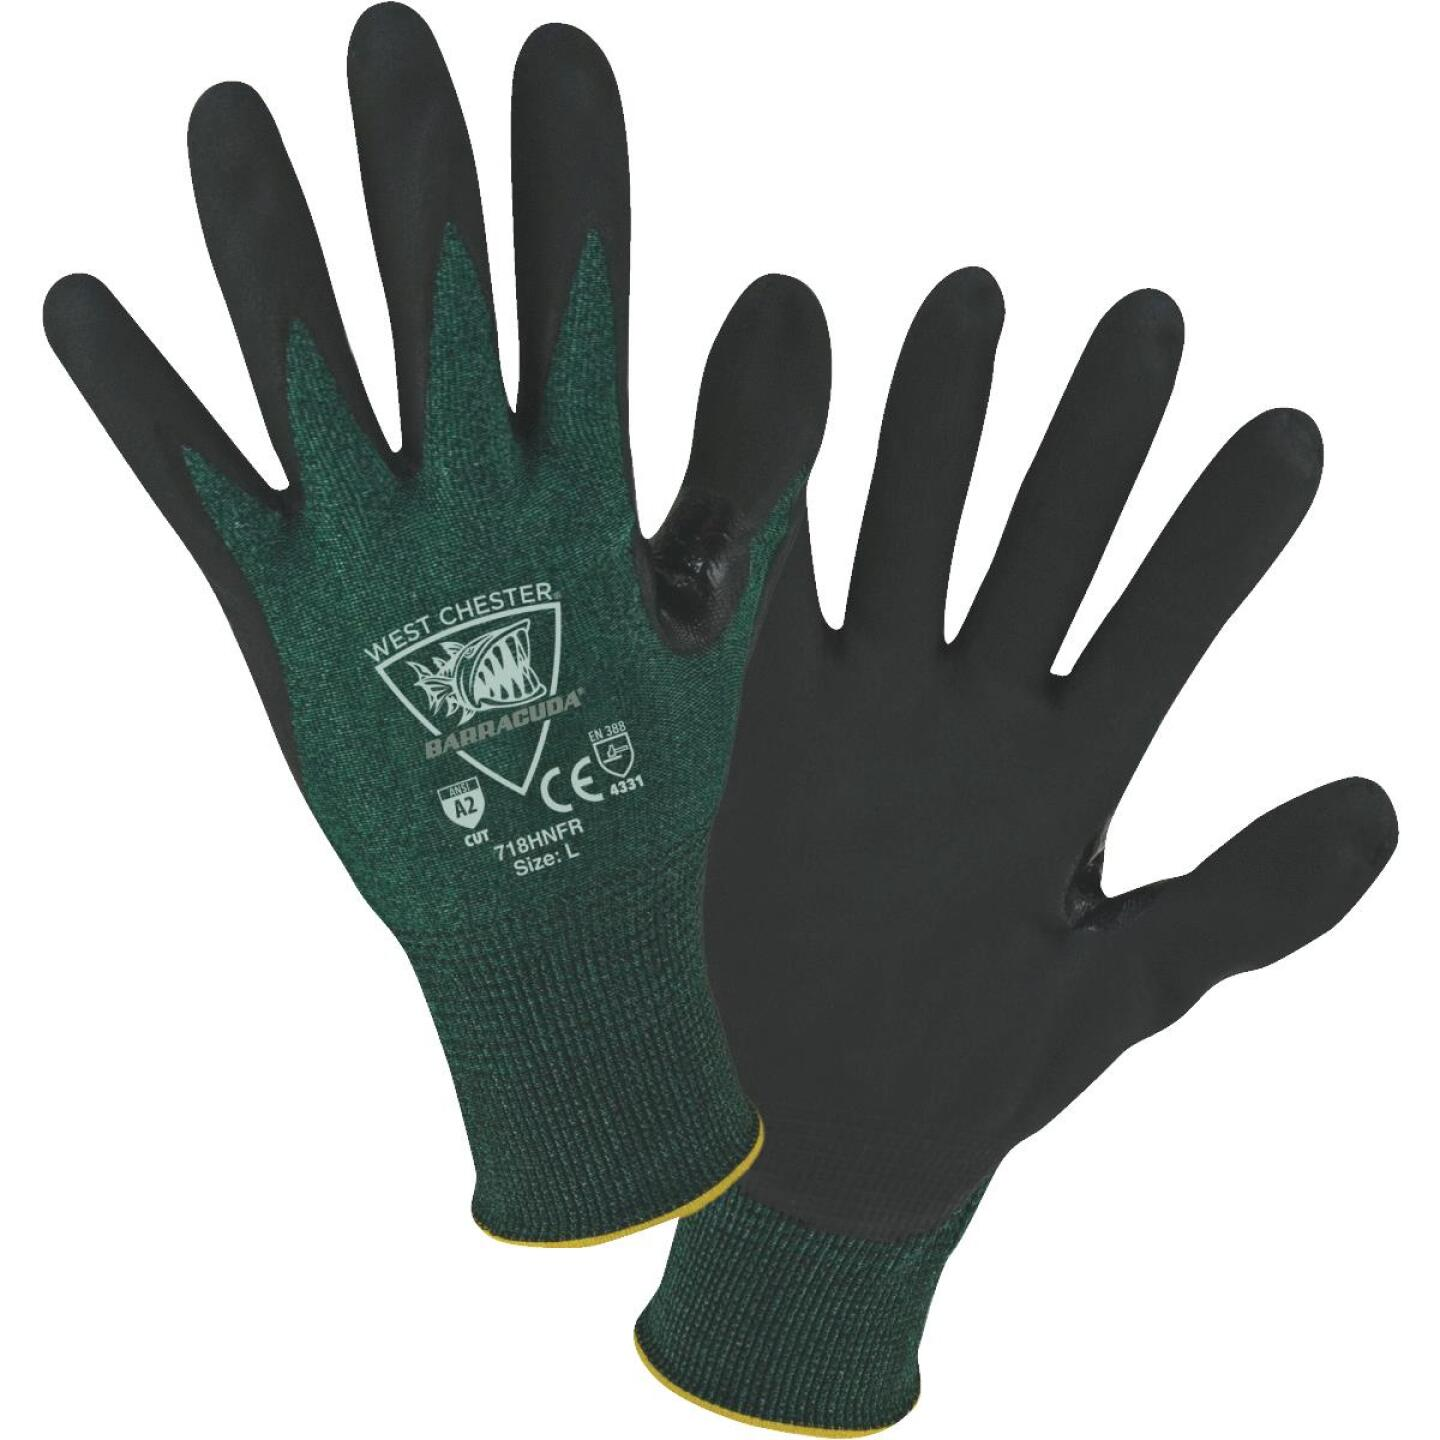 West Chester Protective Gear Barracuda Men's XL 18-Gauge Nitrile Coated Glove Image 1